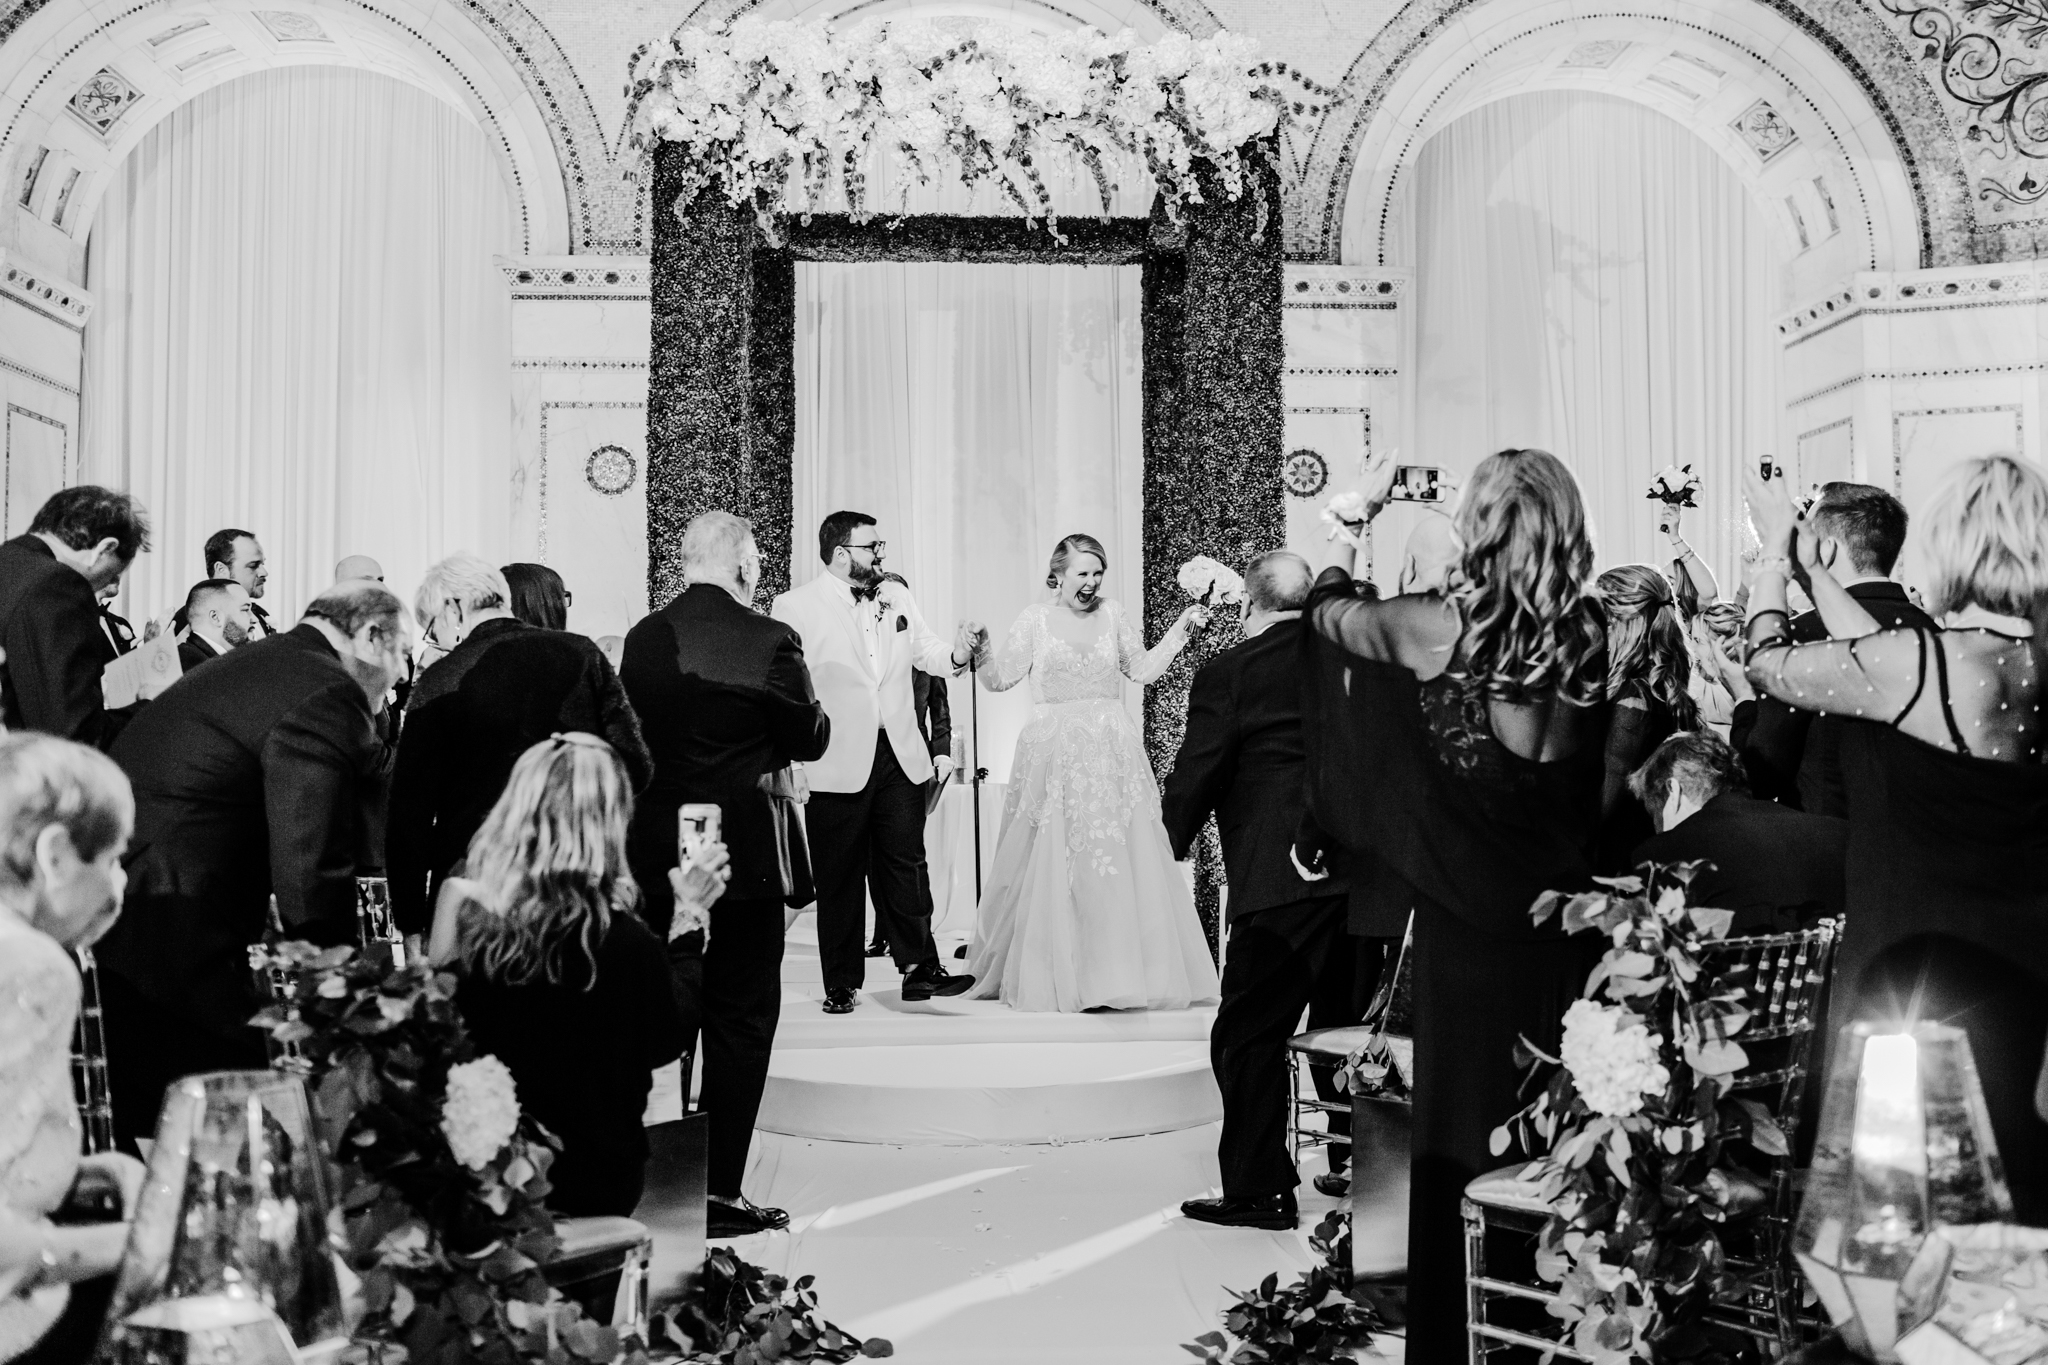 Breaking the wine glass after a wedding ceremony underneath the Chuppah